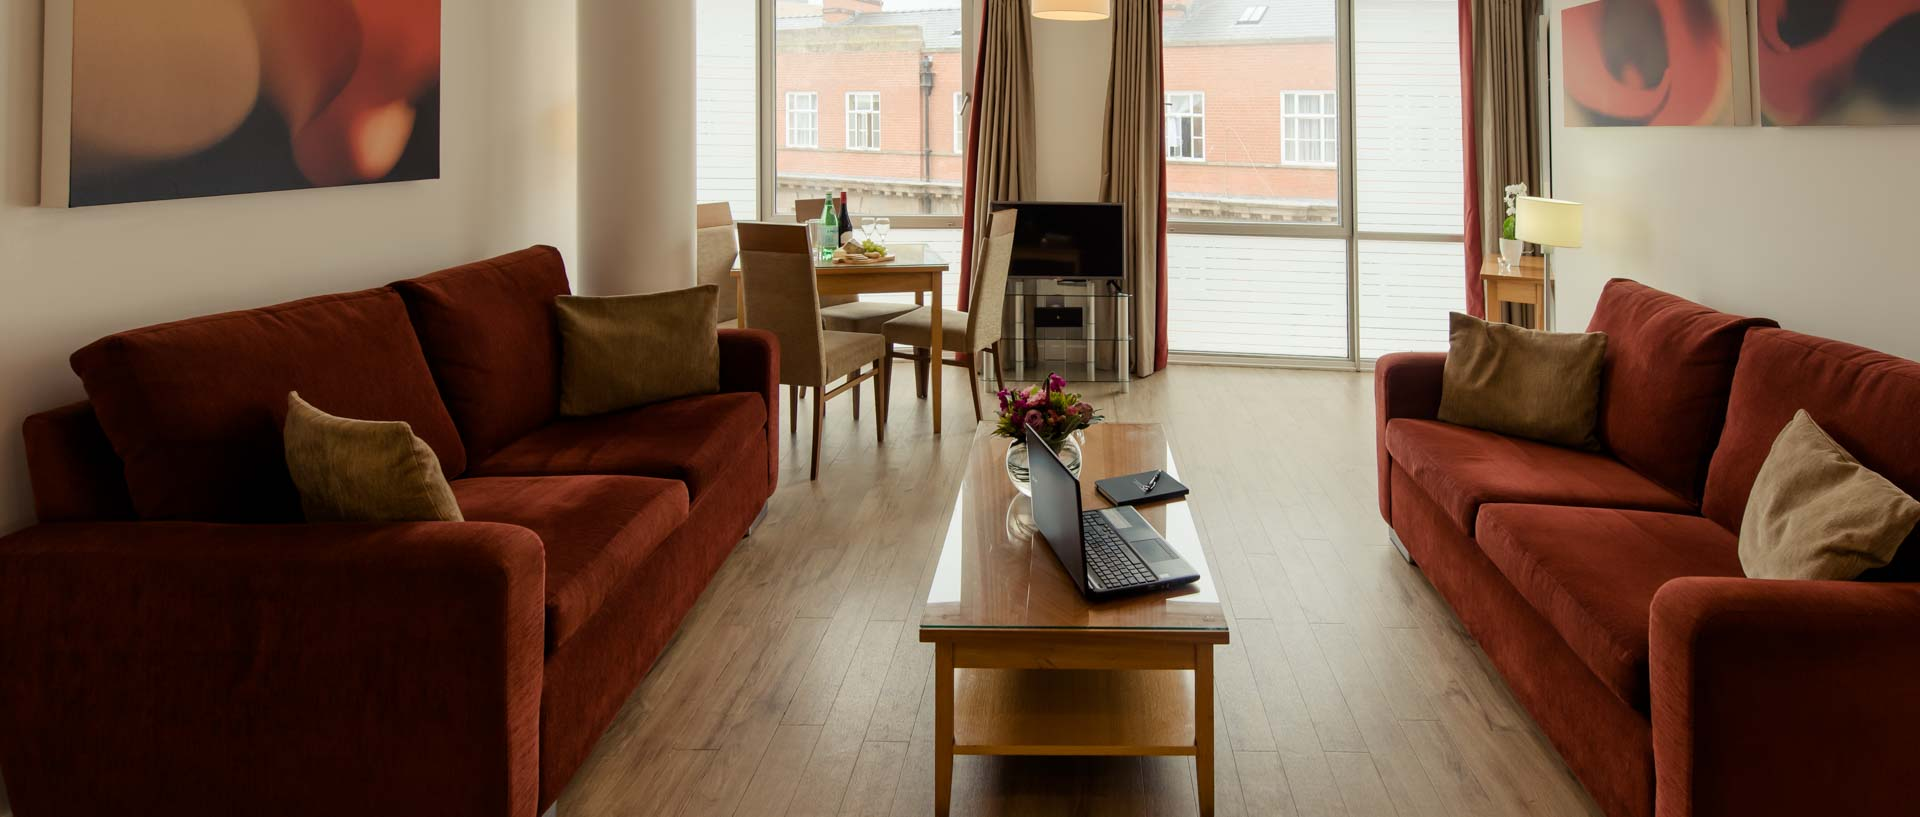 PREMIER SUITES PLUS Liverpool living space